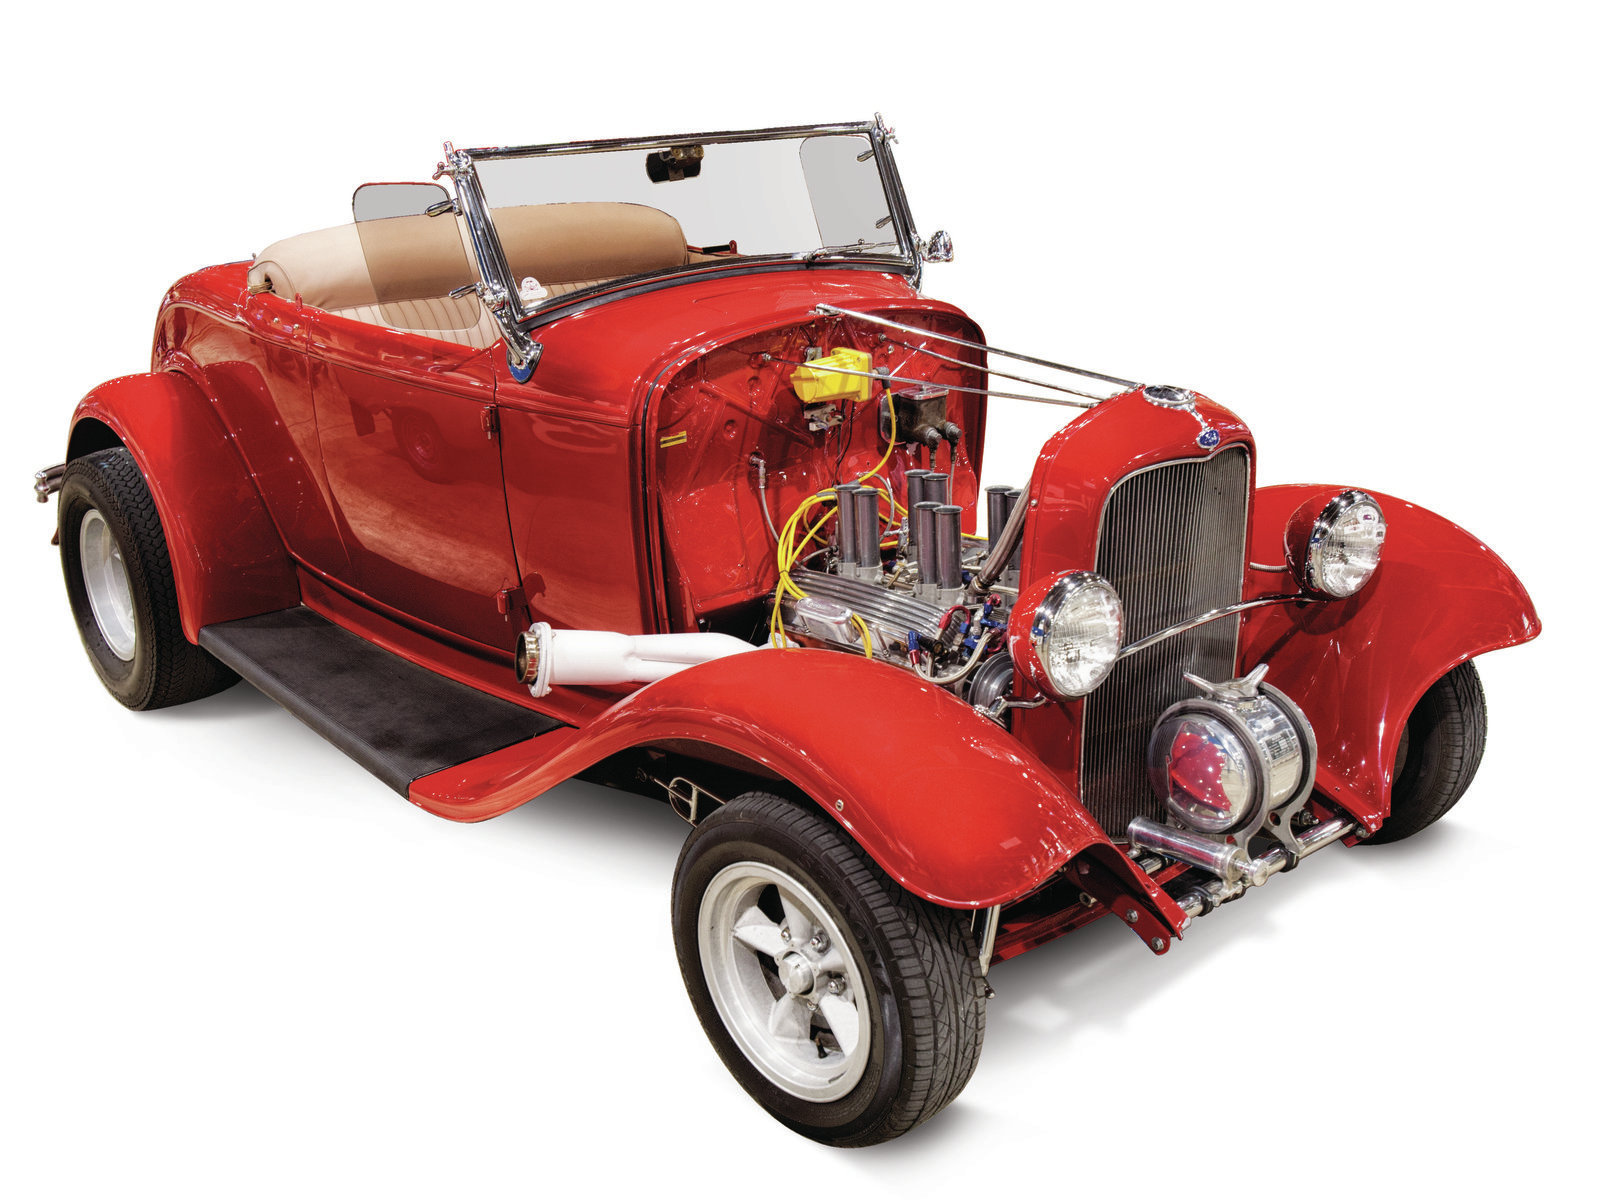 hight resolution of it s missing the hood and rollbar and has torq thrusts instead of slot mags but john wentworth s 1932 roadster looks a lot like it did when it was on the